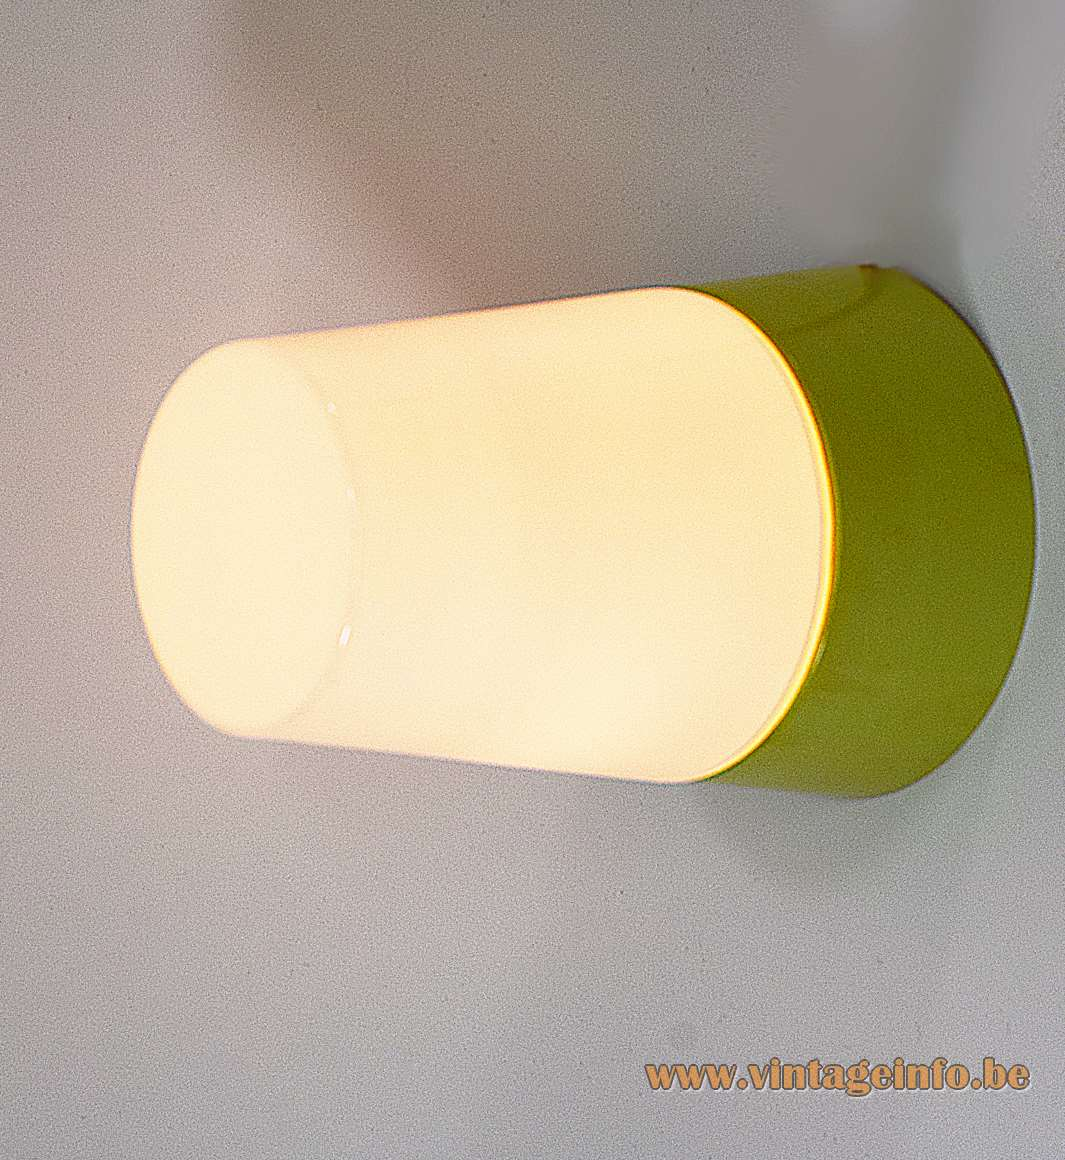 HoSo olive green Bakelite flush mount white opal conical glass lampshade 1950s 1960s Hoffmeister & Sohn Germany